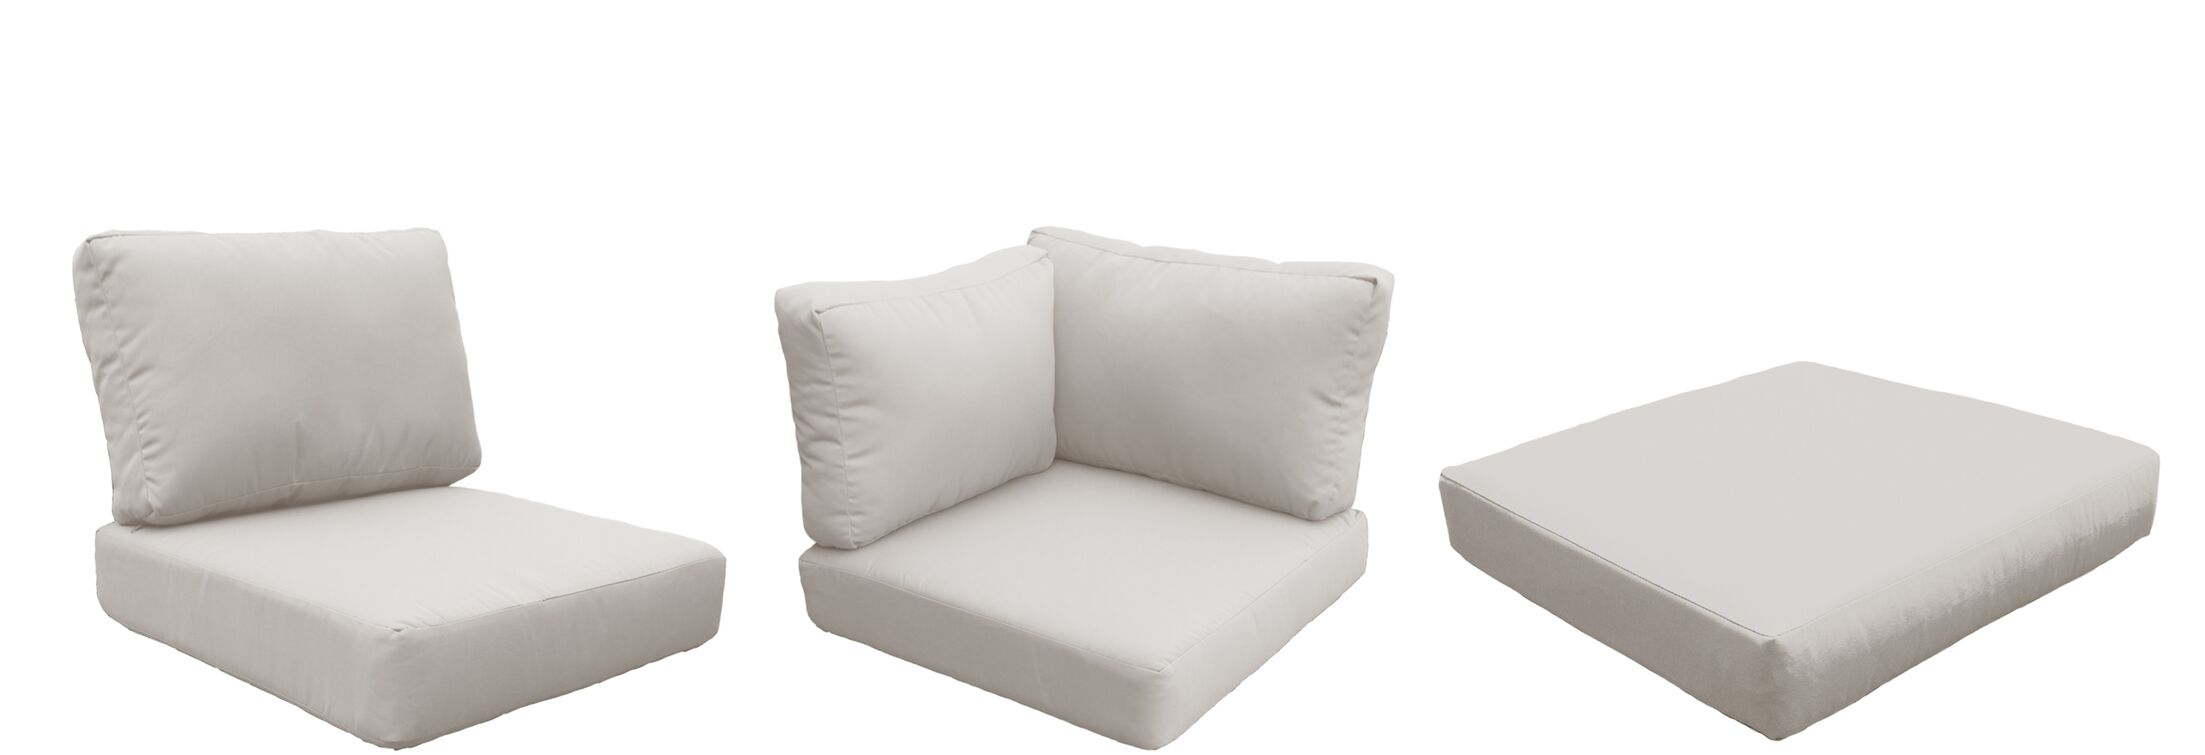 Coast Outdoor Replacement Cushion Set Fabric: Beige